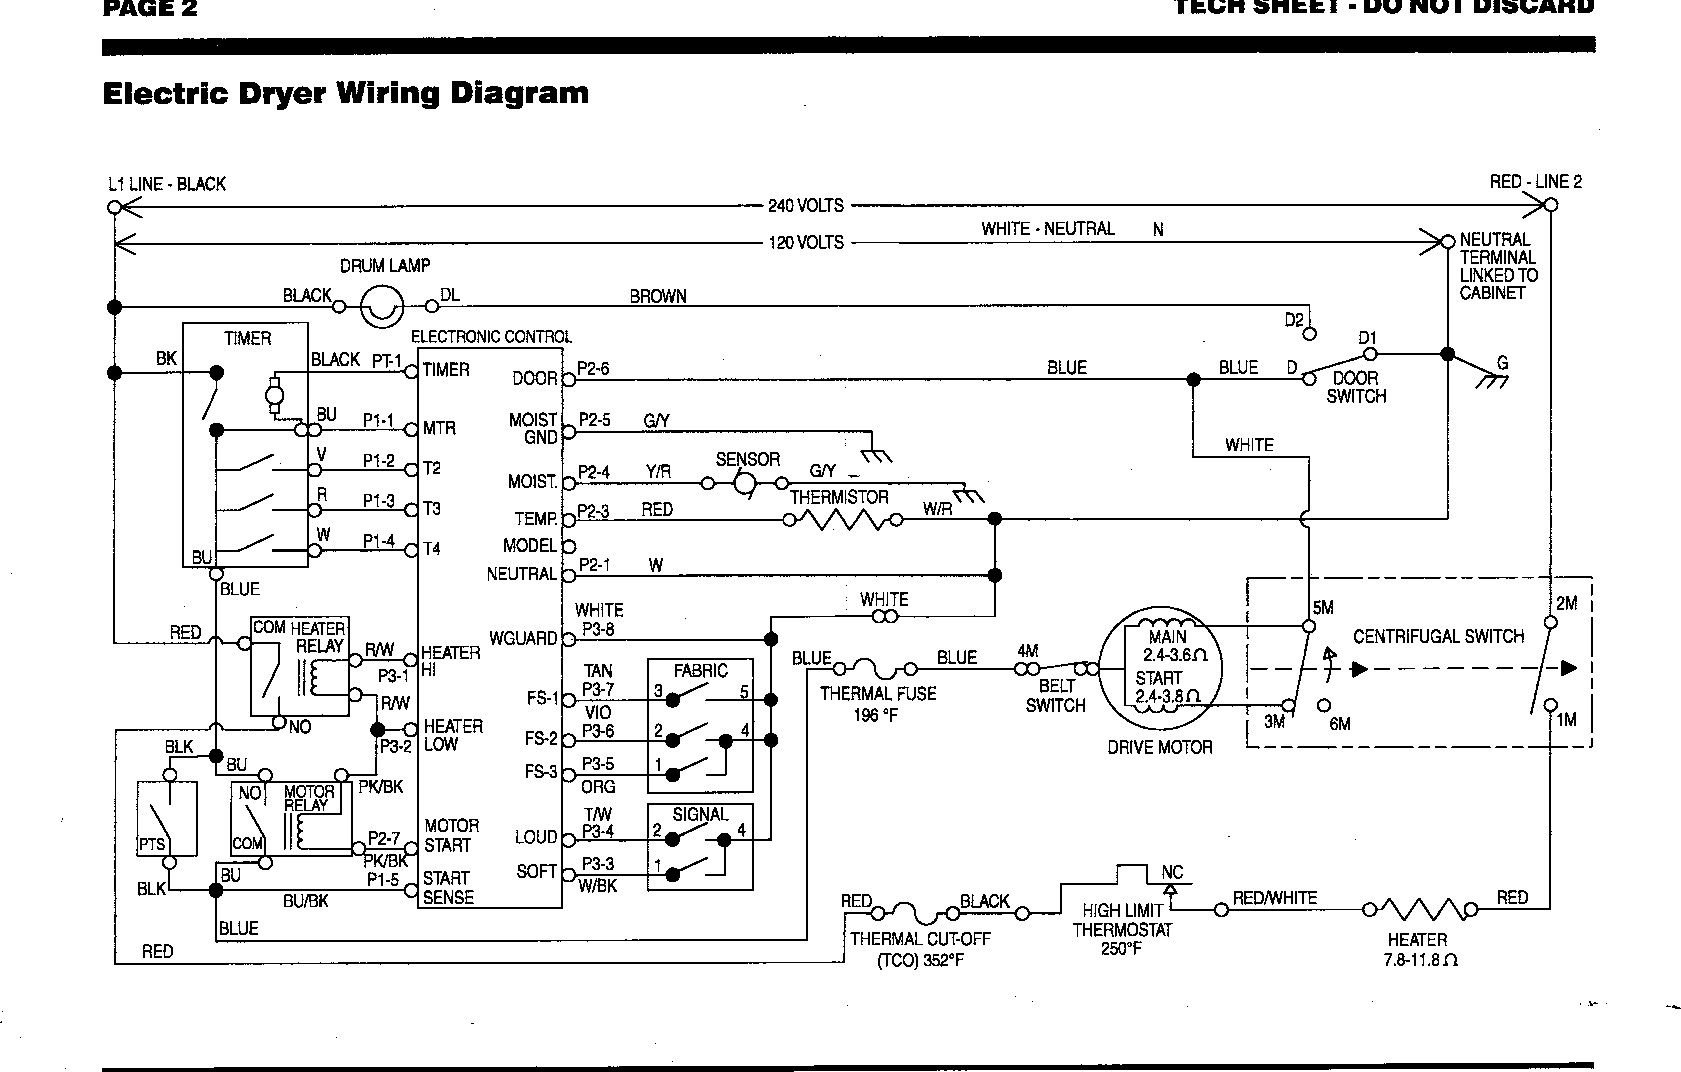 kenmore washing machine wiring diagram get wiring diagram for kenmore dryer model 110 download kenmore model 110 wiring diagram